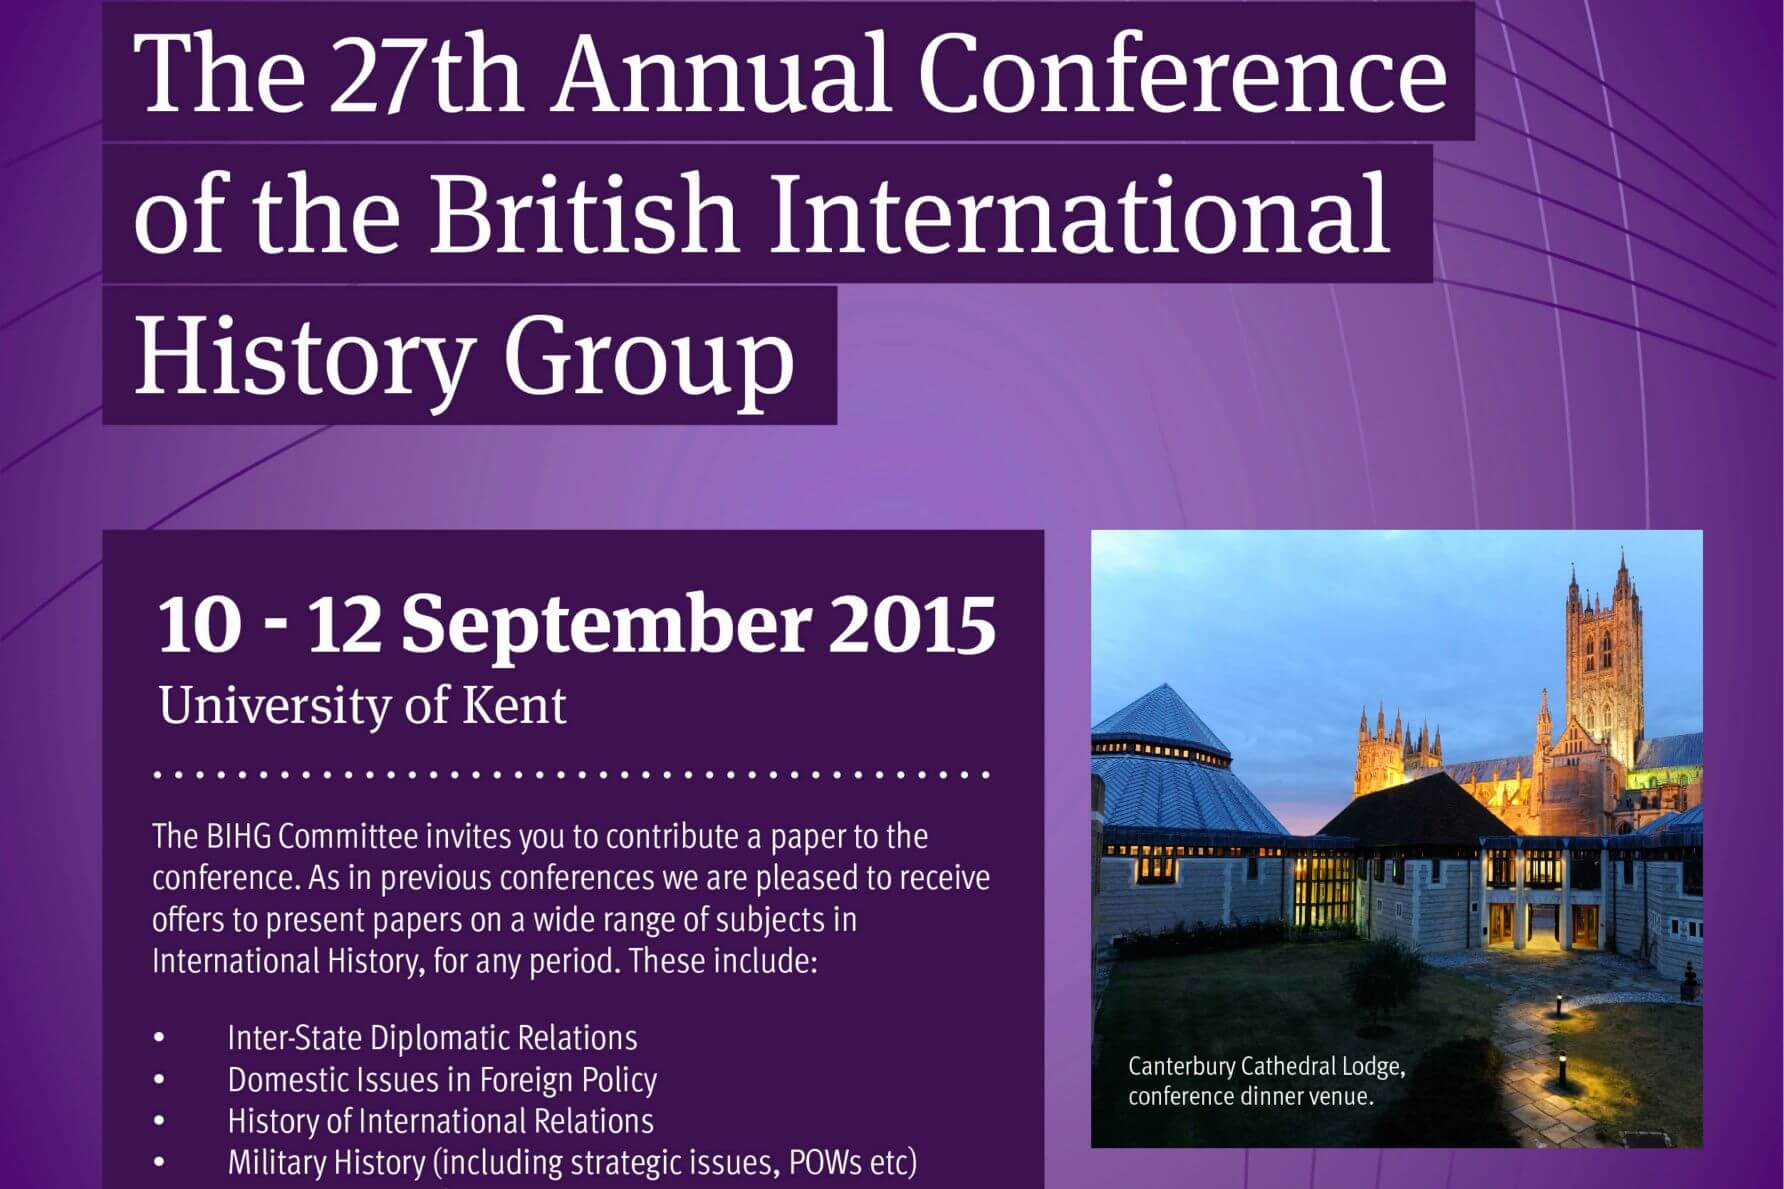 British International History Group 27th Annual Conference